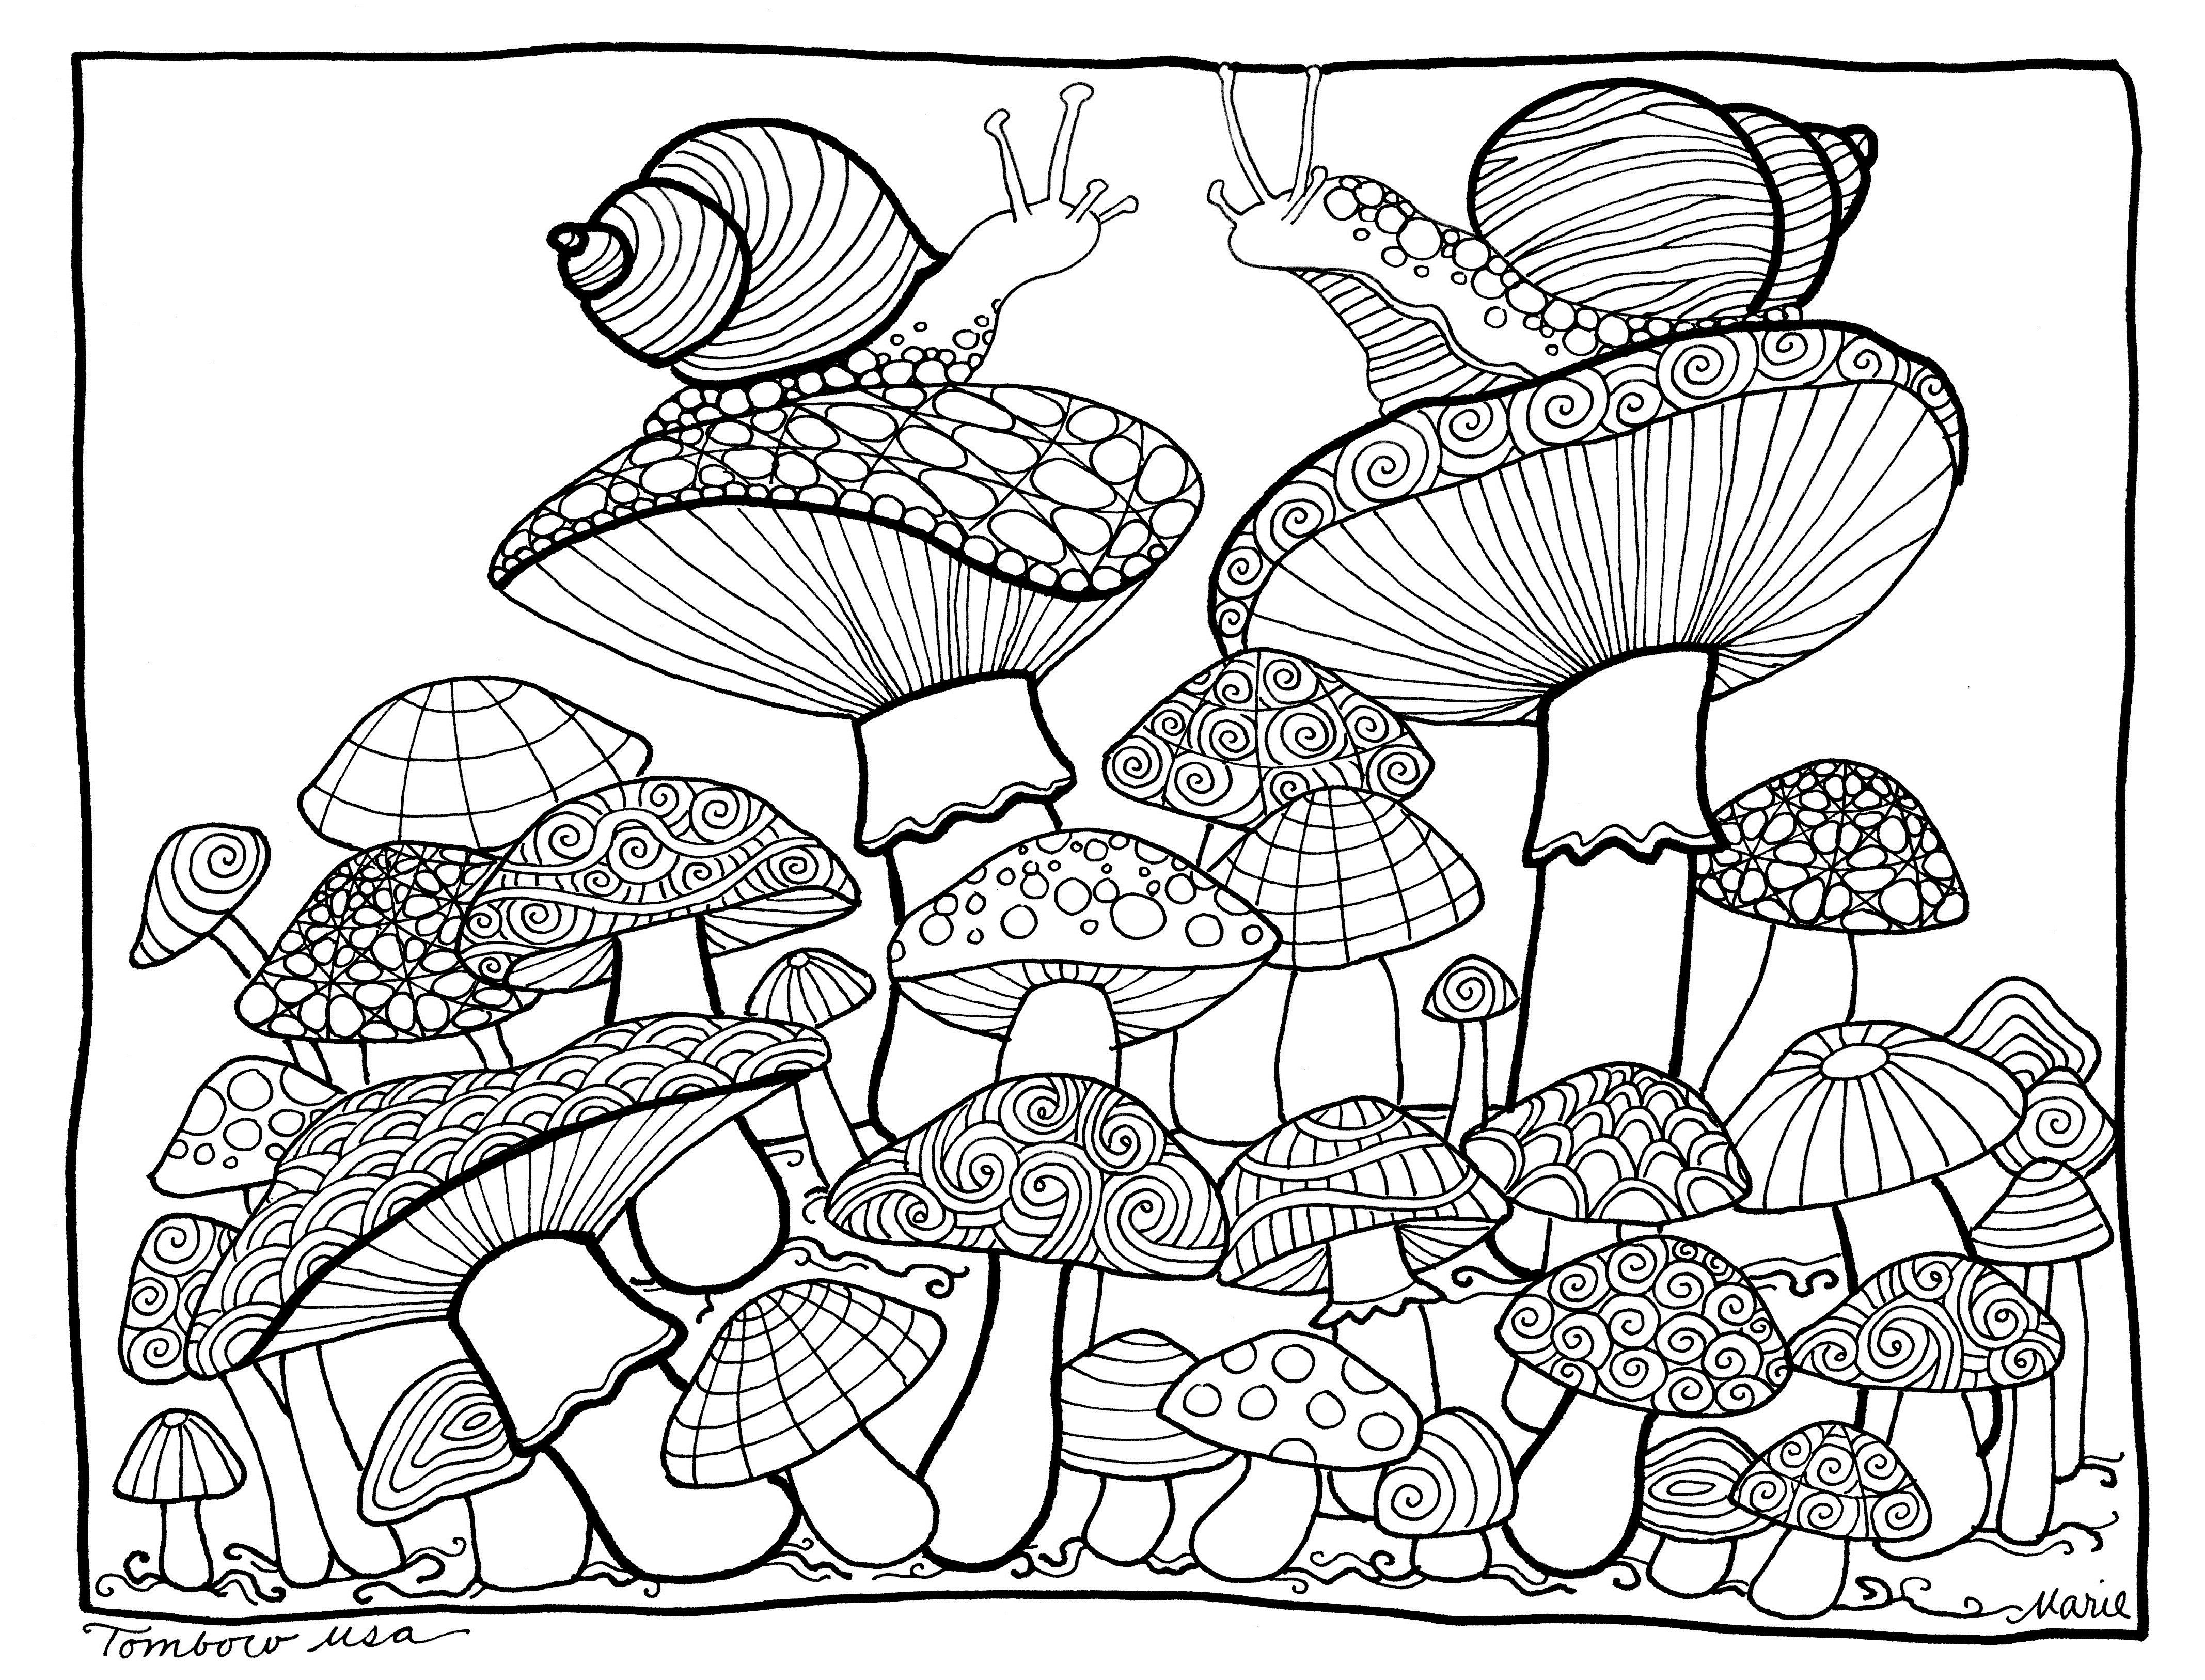 mushroom coloring pages Mushrooms coloring page by Tombow USA | Paper | Coloring pages  mushroom coloring pages